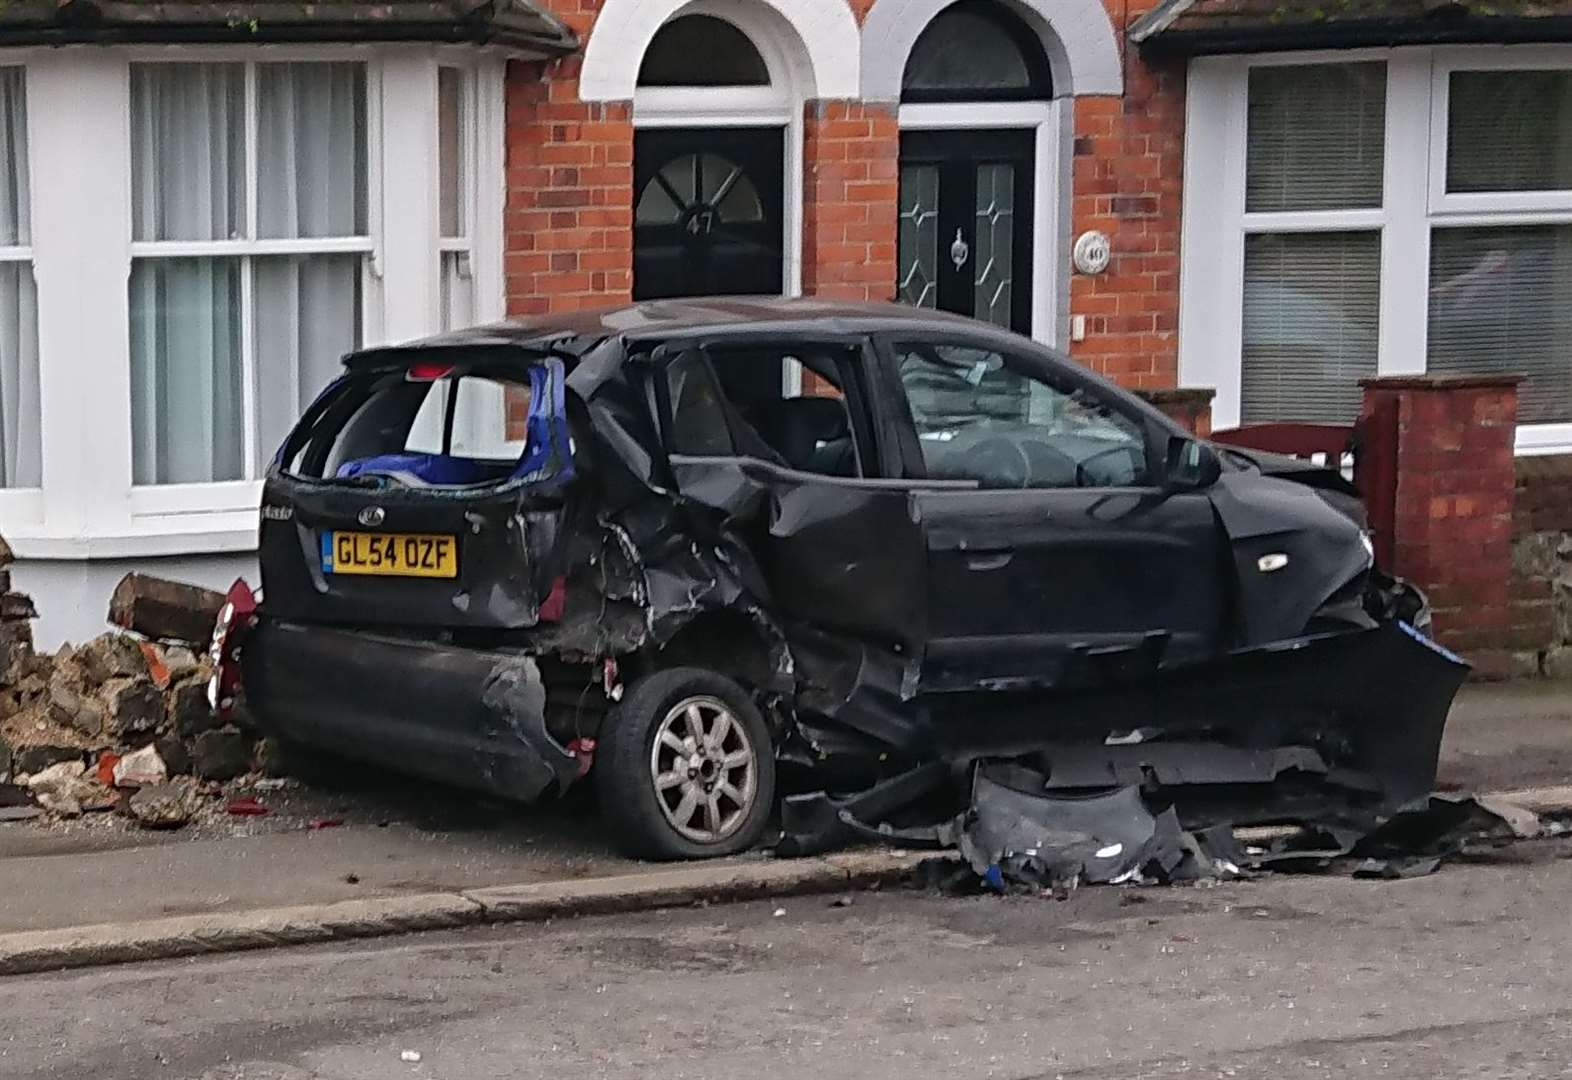 Man charged after car wrecked in crash